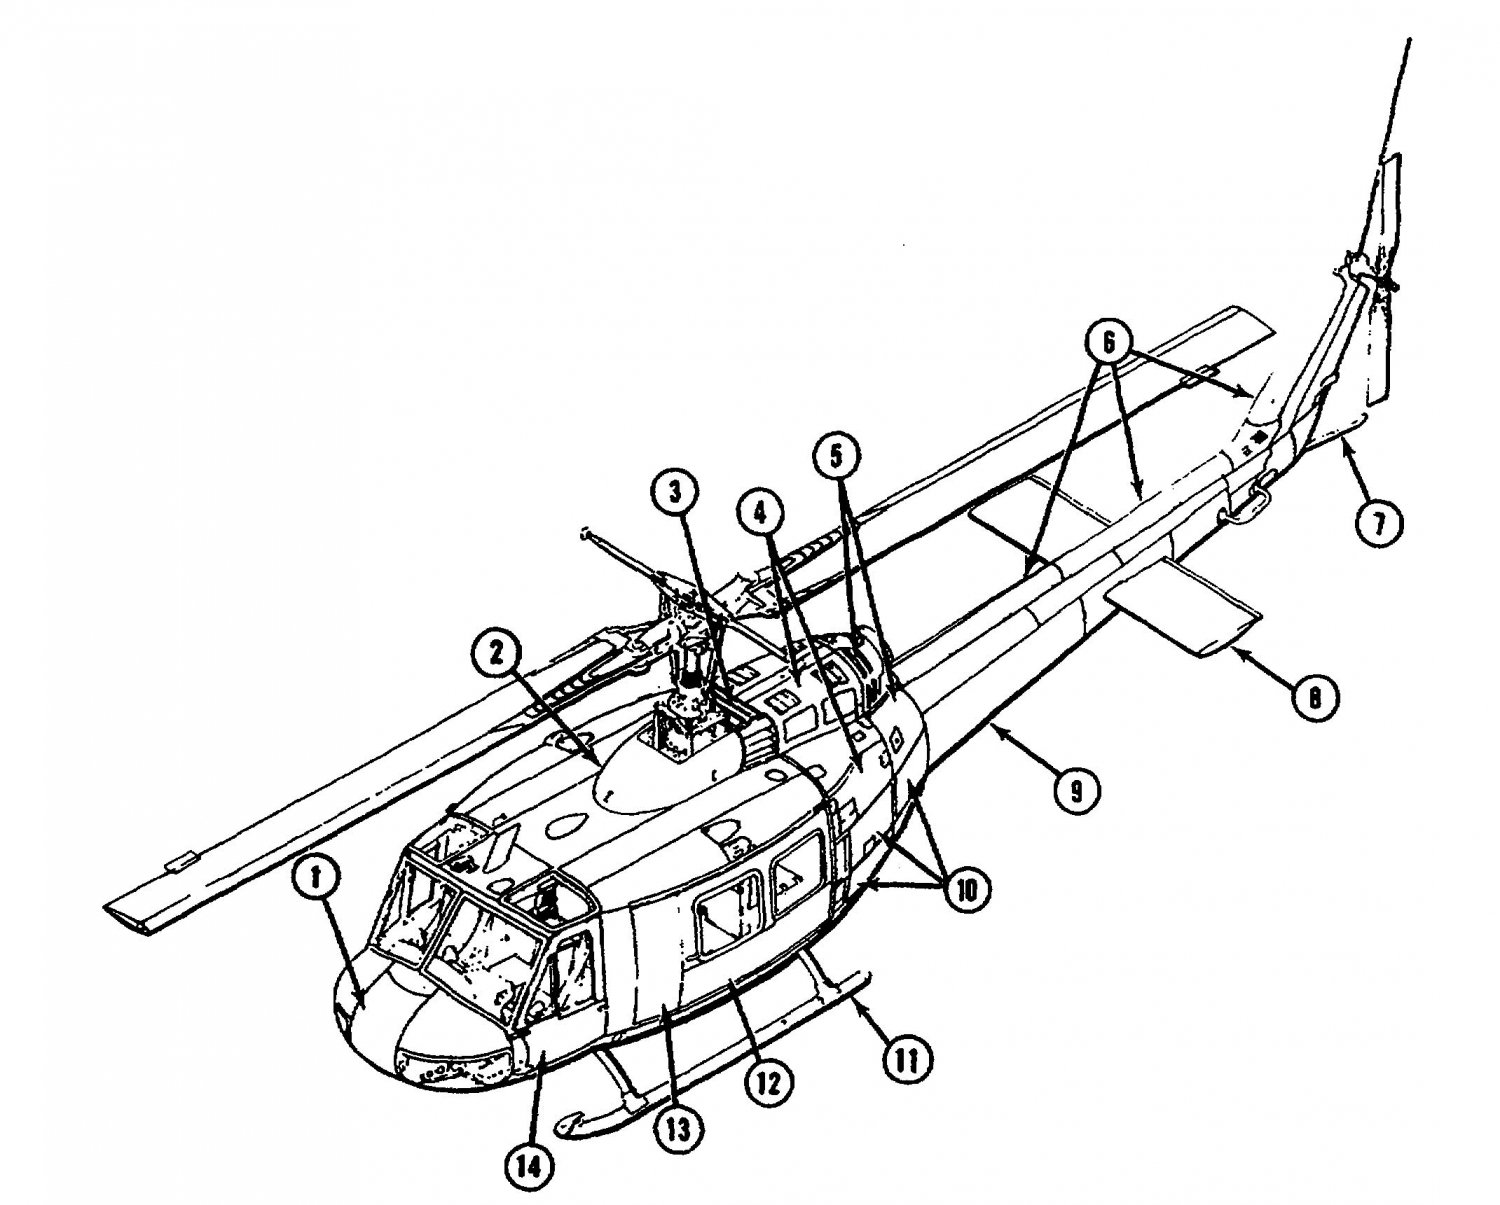 1500x1205 Uh 1 Huey Helicopter 77 Manual Cd, 8314 Pages Iroquois Bell